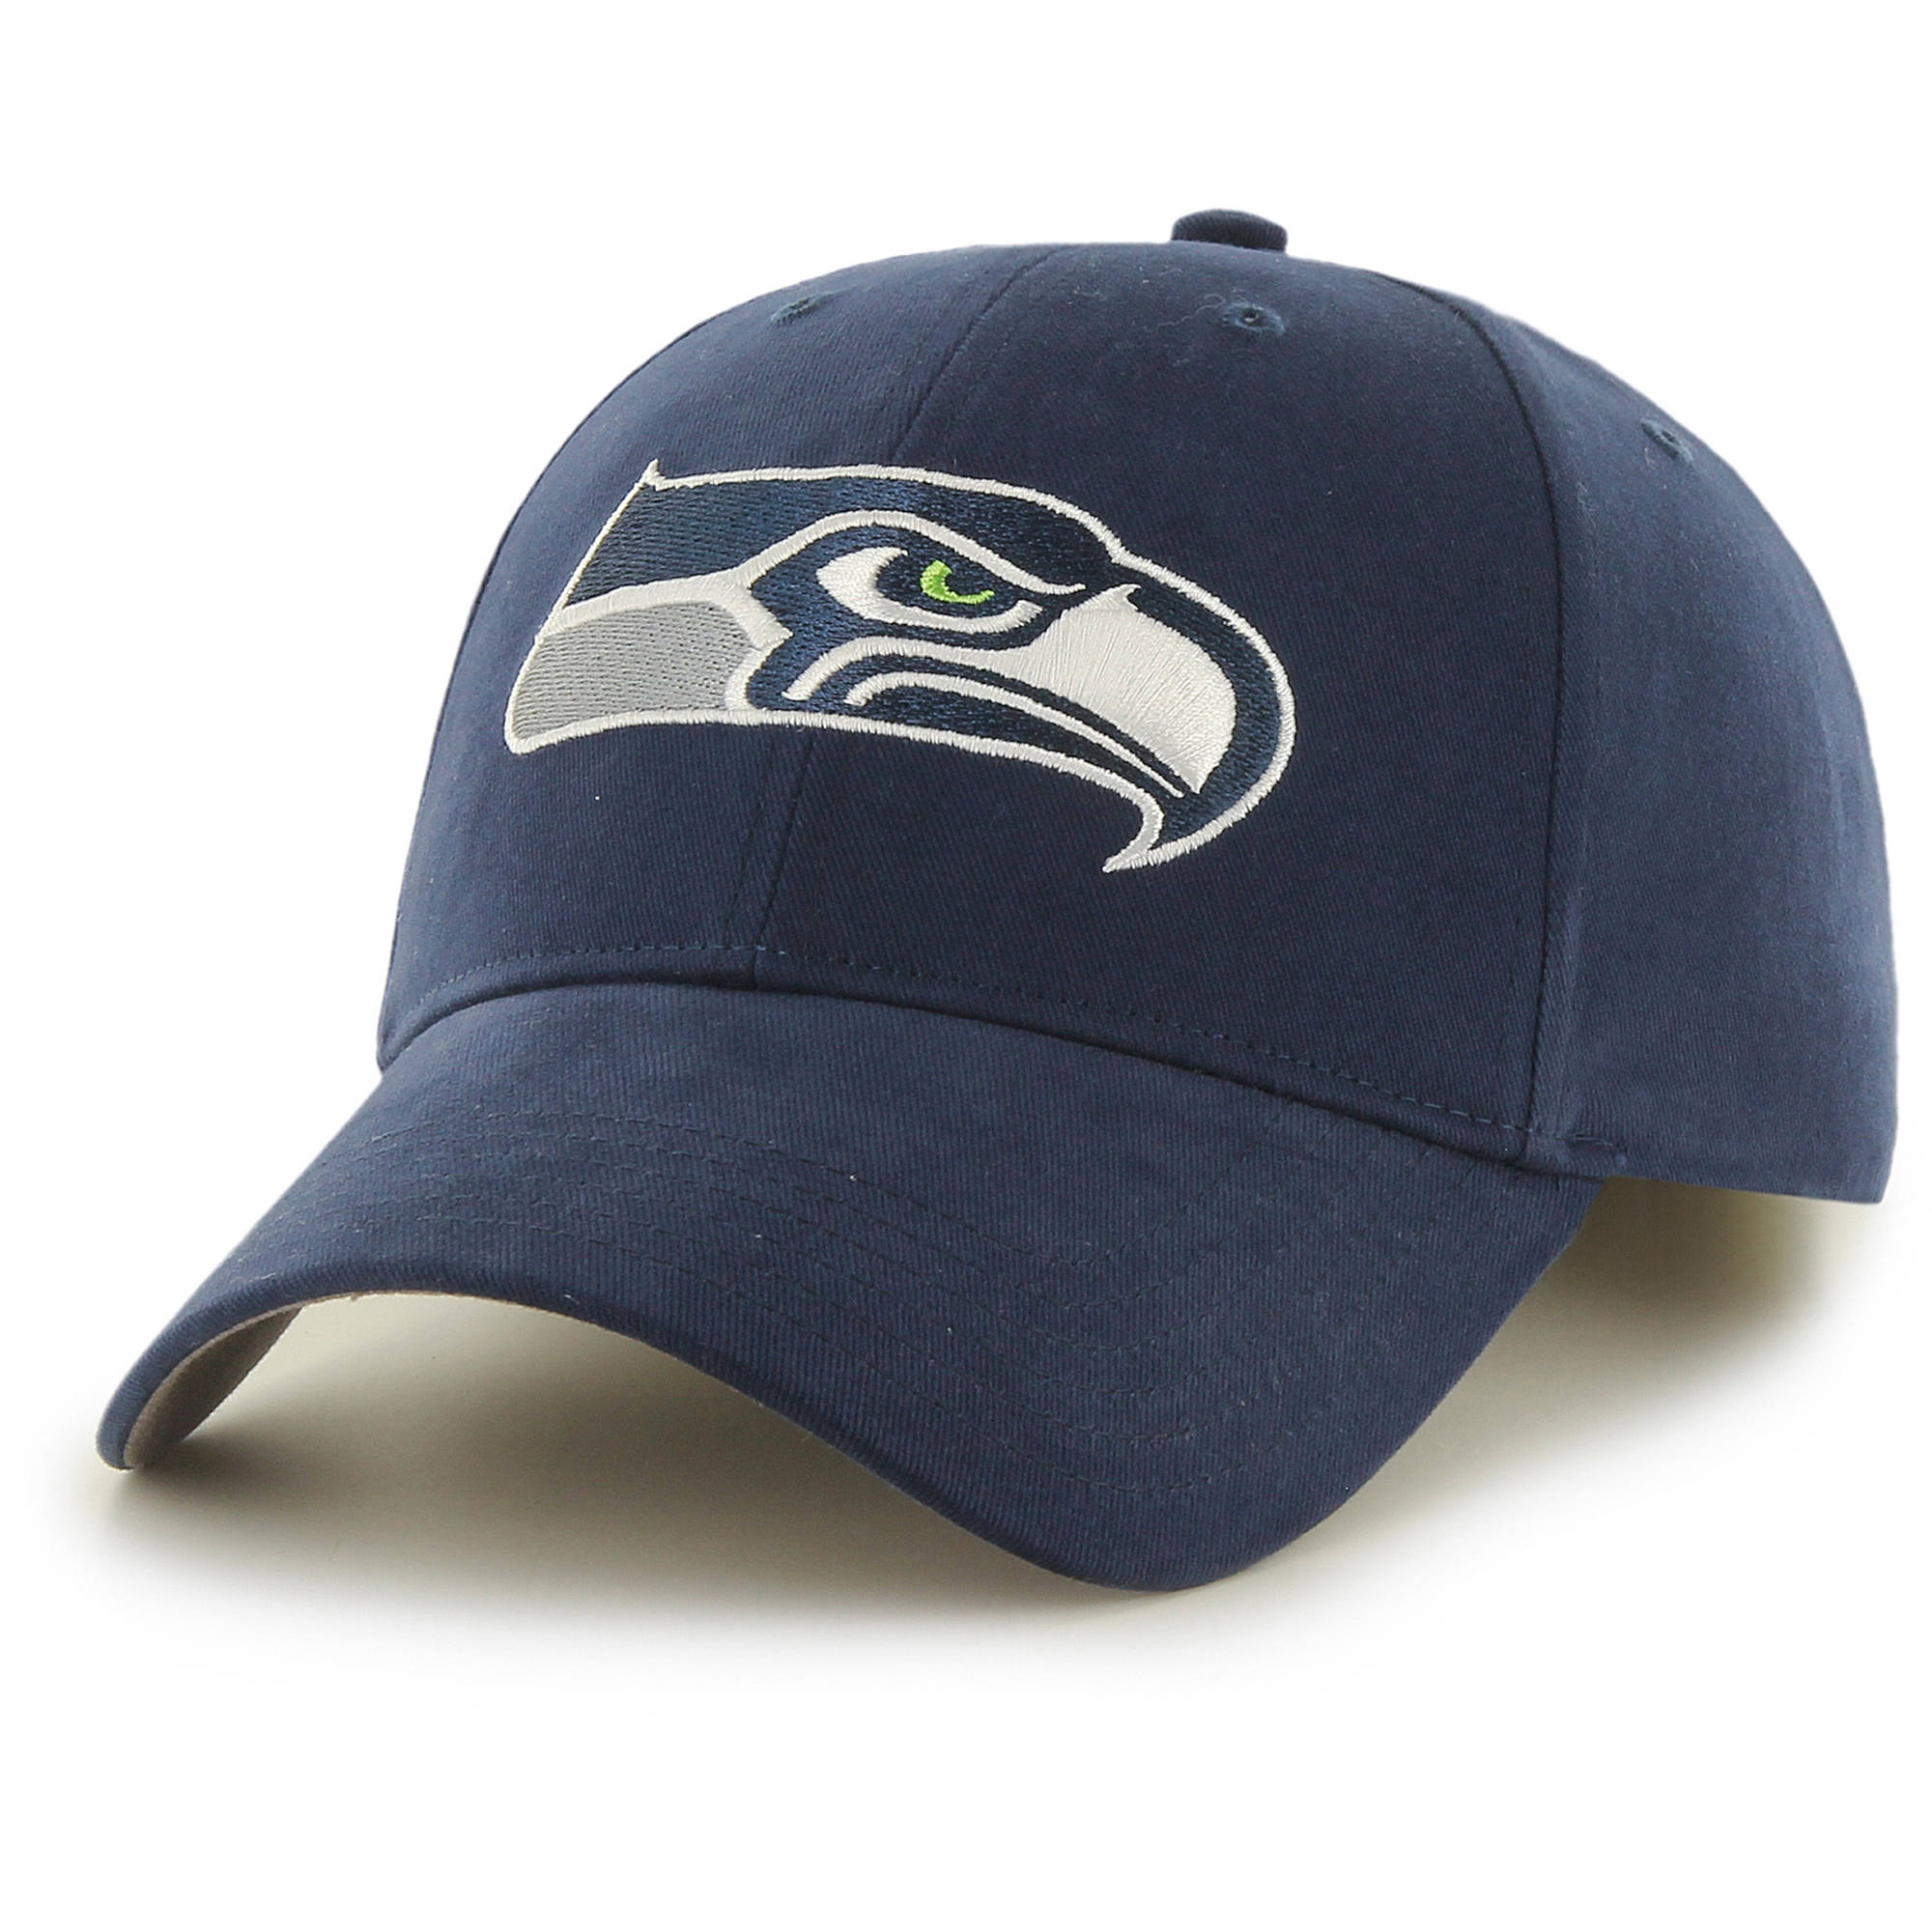 NFL Seattle Seahawks Basic Cap   Hat Fan Favorite by 47 Brand